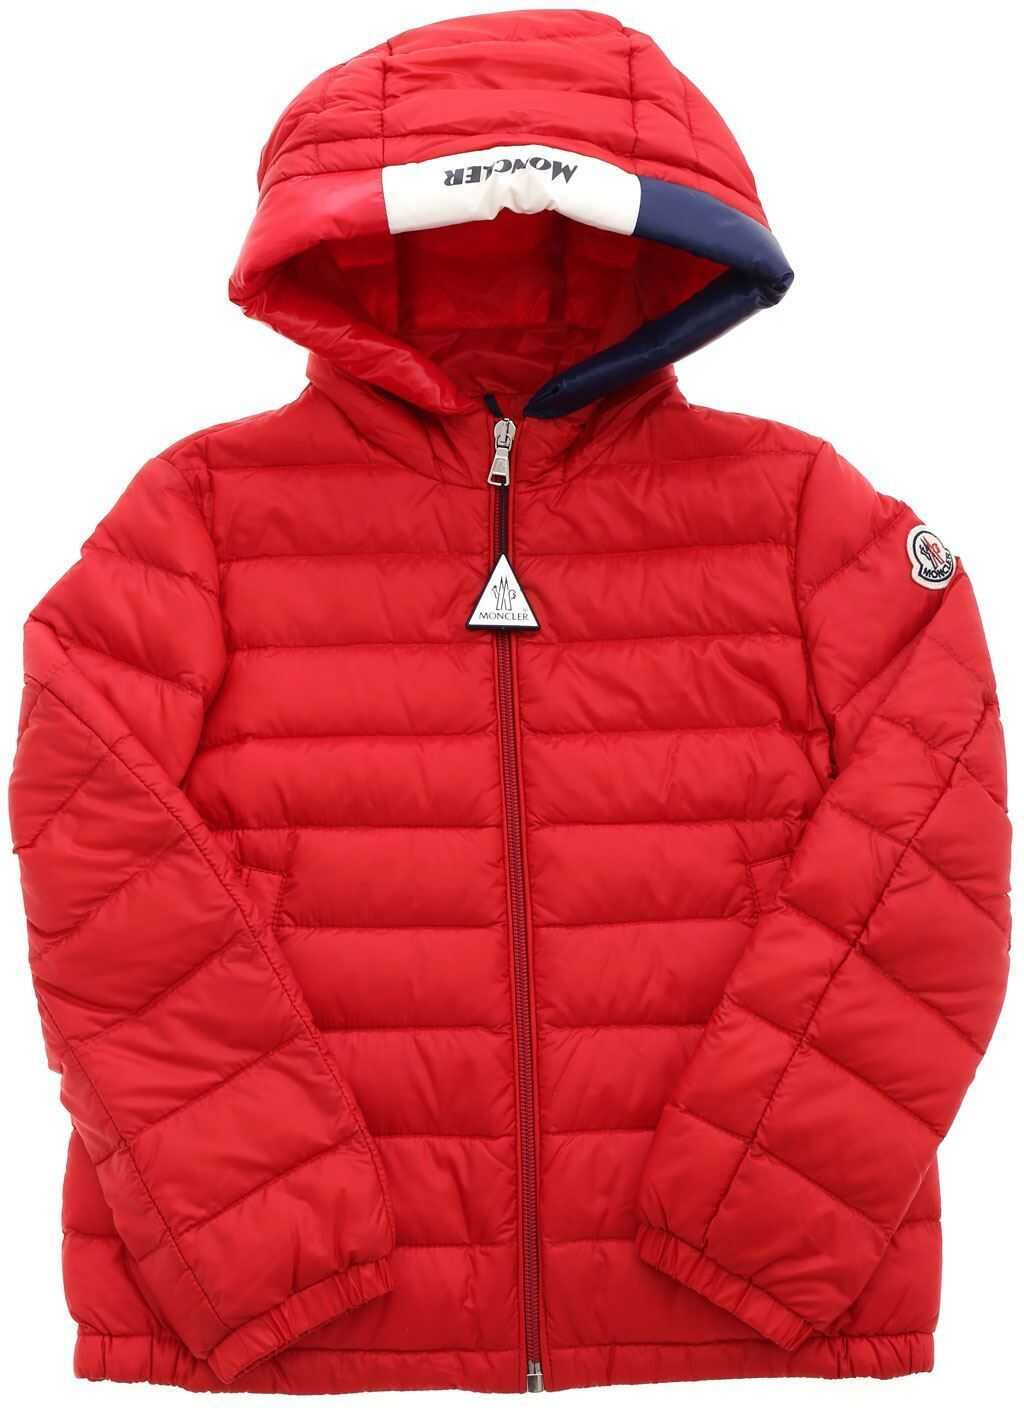 Sureau Down Jacket In Red thumbnail